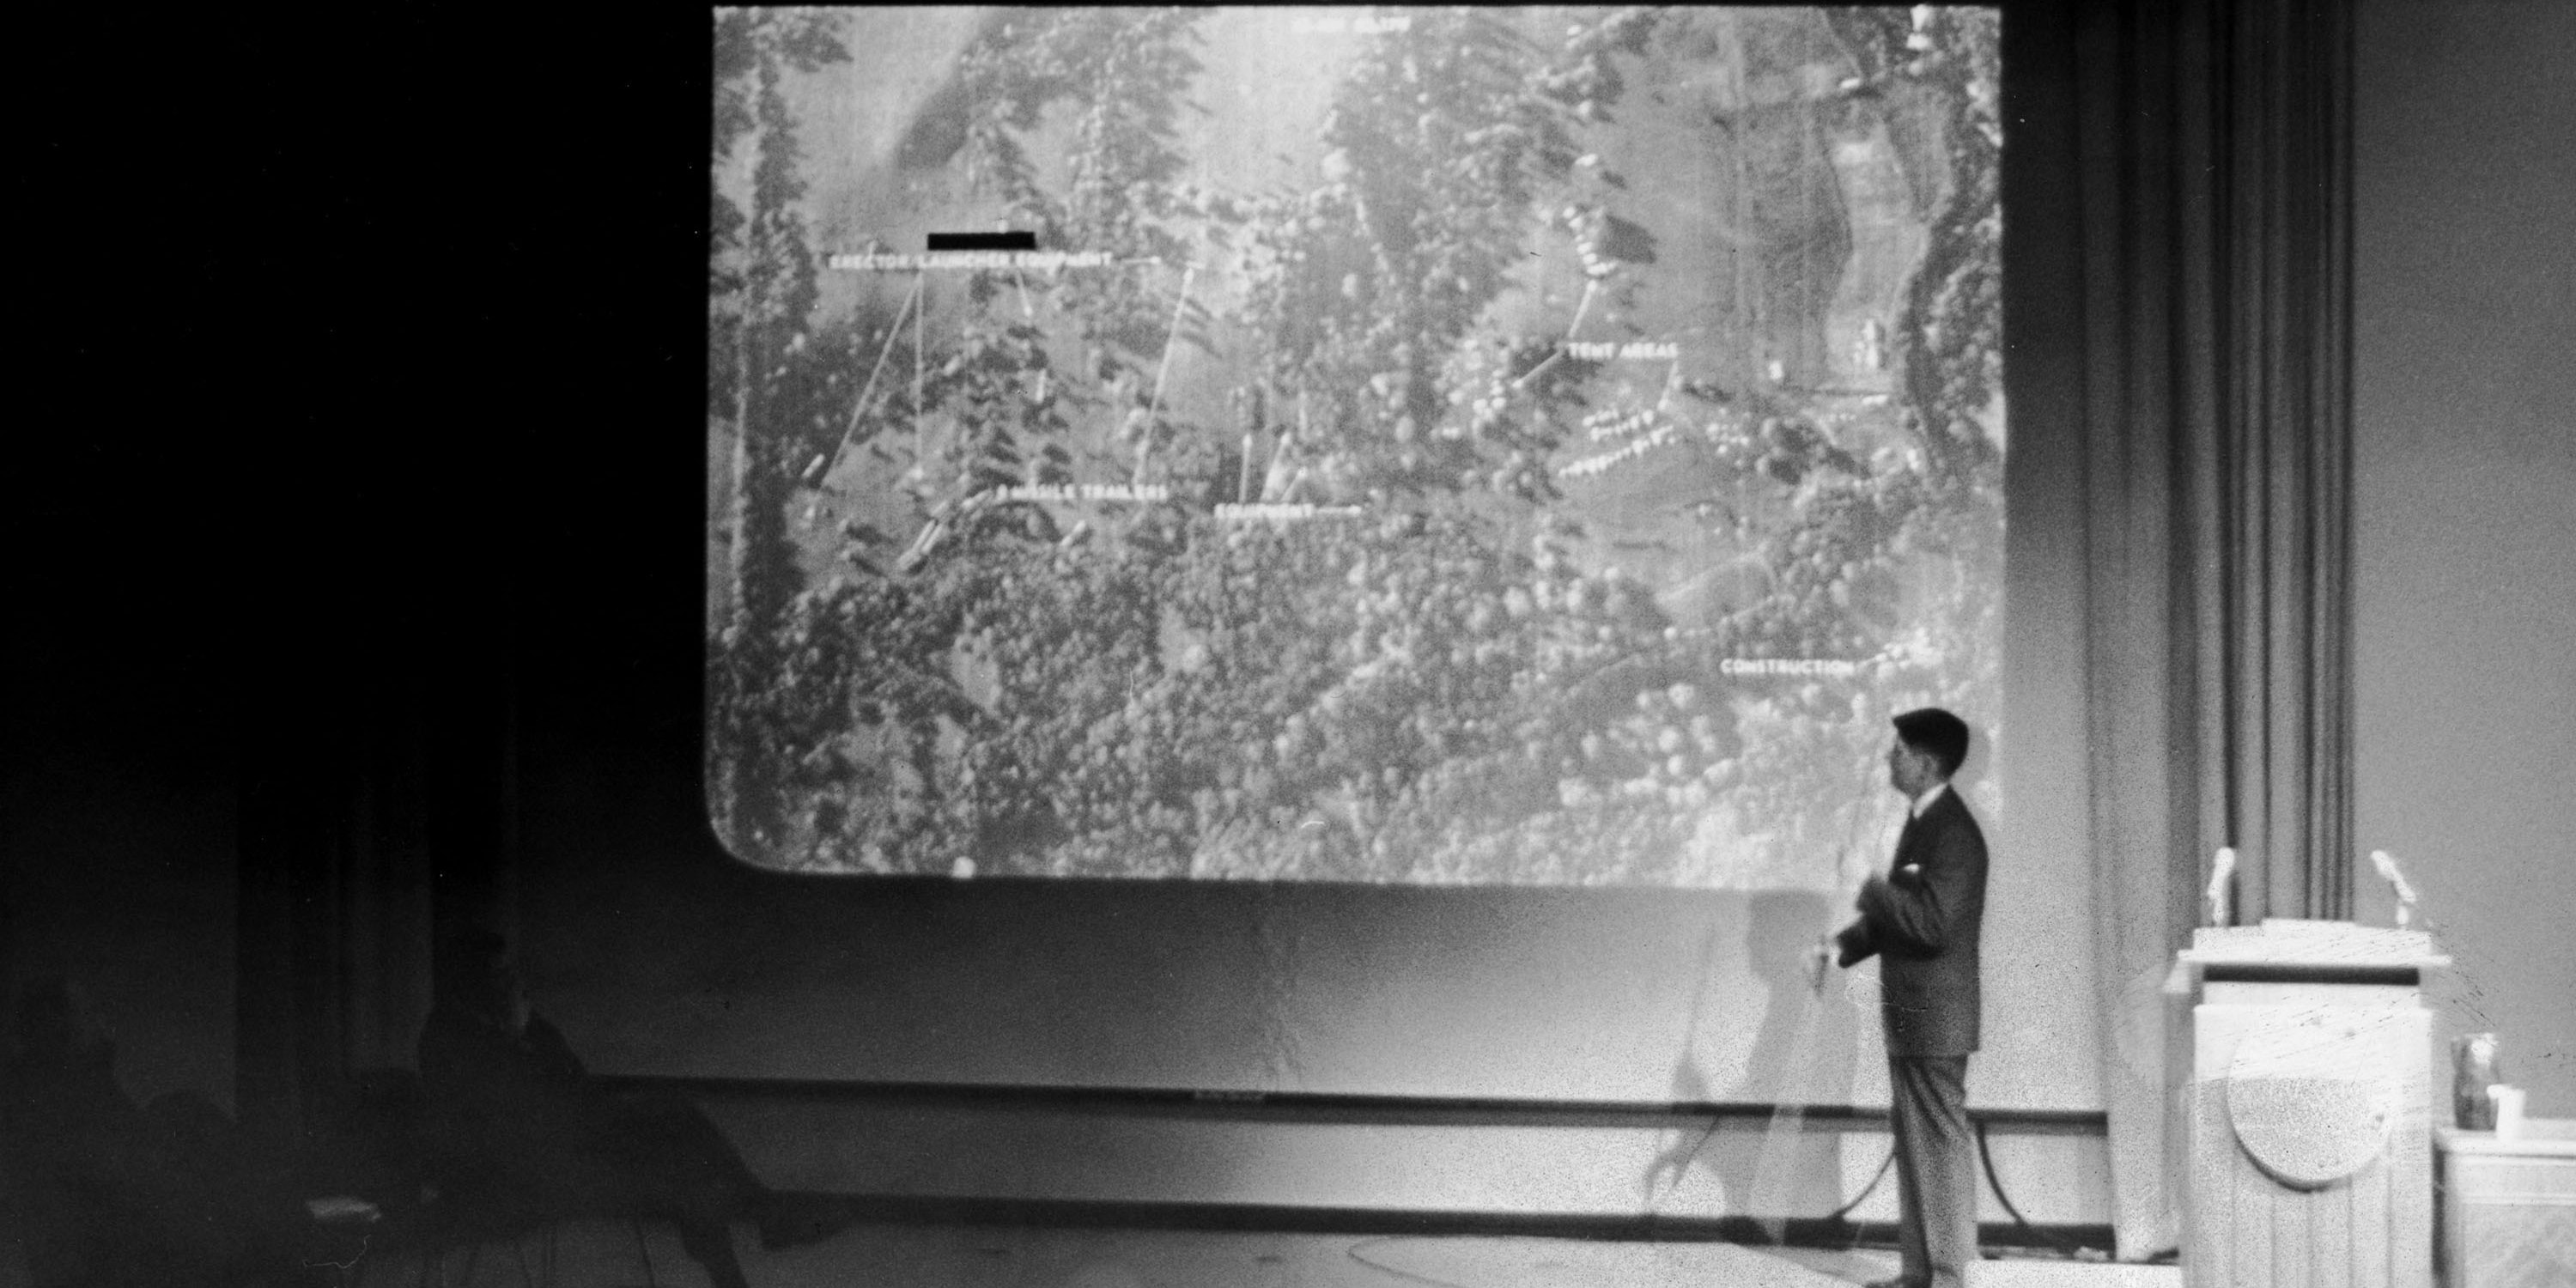 WASHINGTON - FEBRUARY 6, 1963:  (EDITORIAL USE ONLY)  (FILE PHOTO)  John Hughes, Special Assistant to the Director of Defense Intelligence, conducts a military briefing for the news media showing the absence of Soviet missiles in Cuba with an aerial map during the Cuban missile crisis February 6, 1963 in Washington, DC. Former Russian and U.S. officials attending a conference commemorating the 40th anniversary of the missile crisis October 2002 in Cuba said that the world was closer to a nuclear conflict during the 1962 standoff between Cuba and the U.S., than governments were aware of.  (Photo by Getty Images)